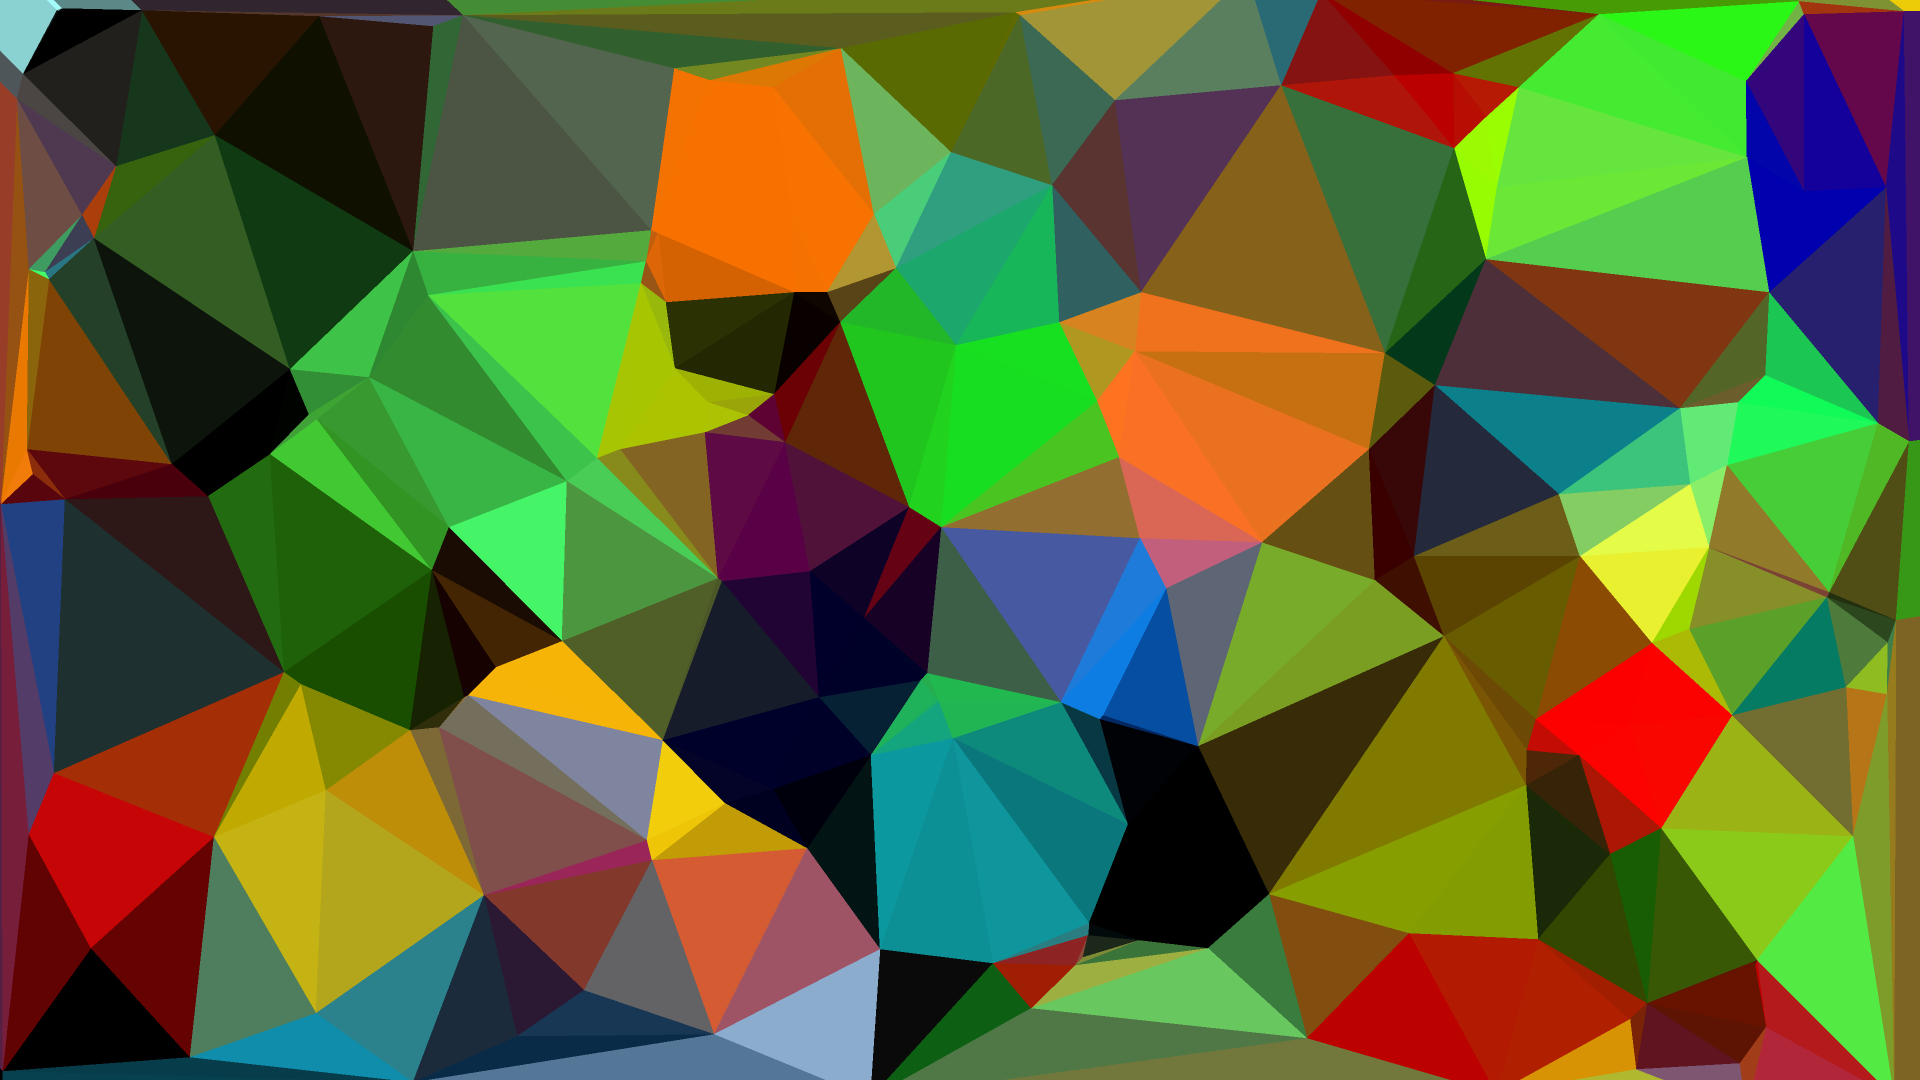 Free Colorful Geometric Wallpaper: Wallpaper Geometric Color 34 1080p HD By AIRWORLDKING On